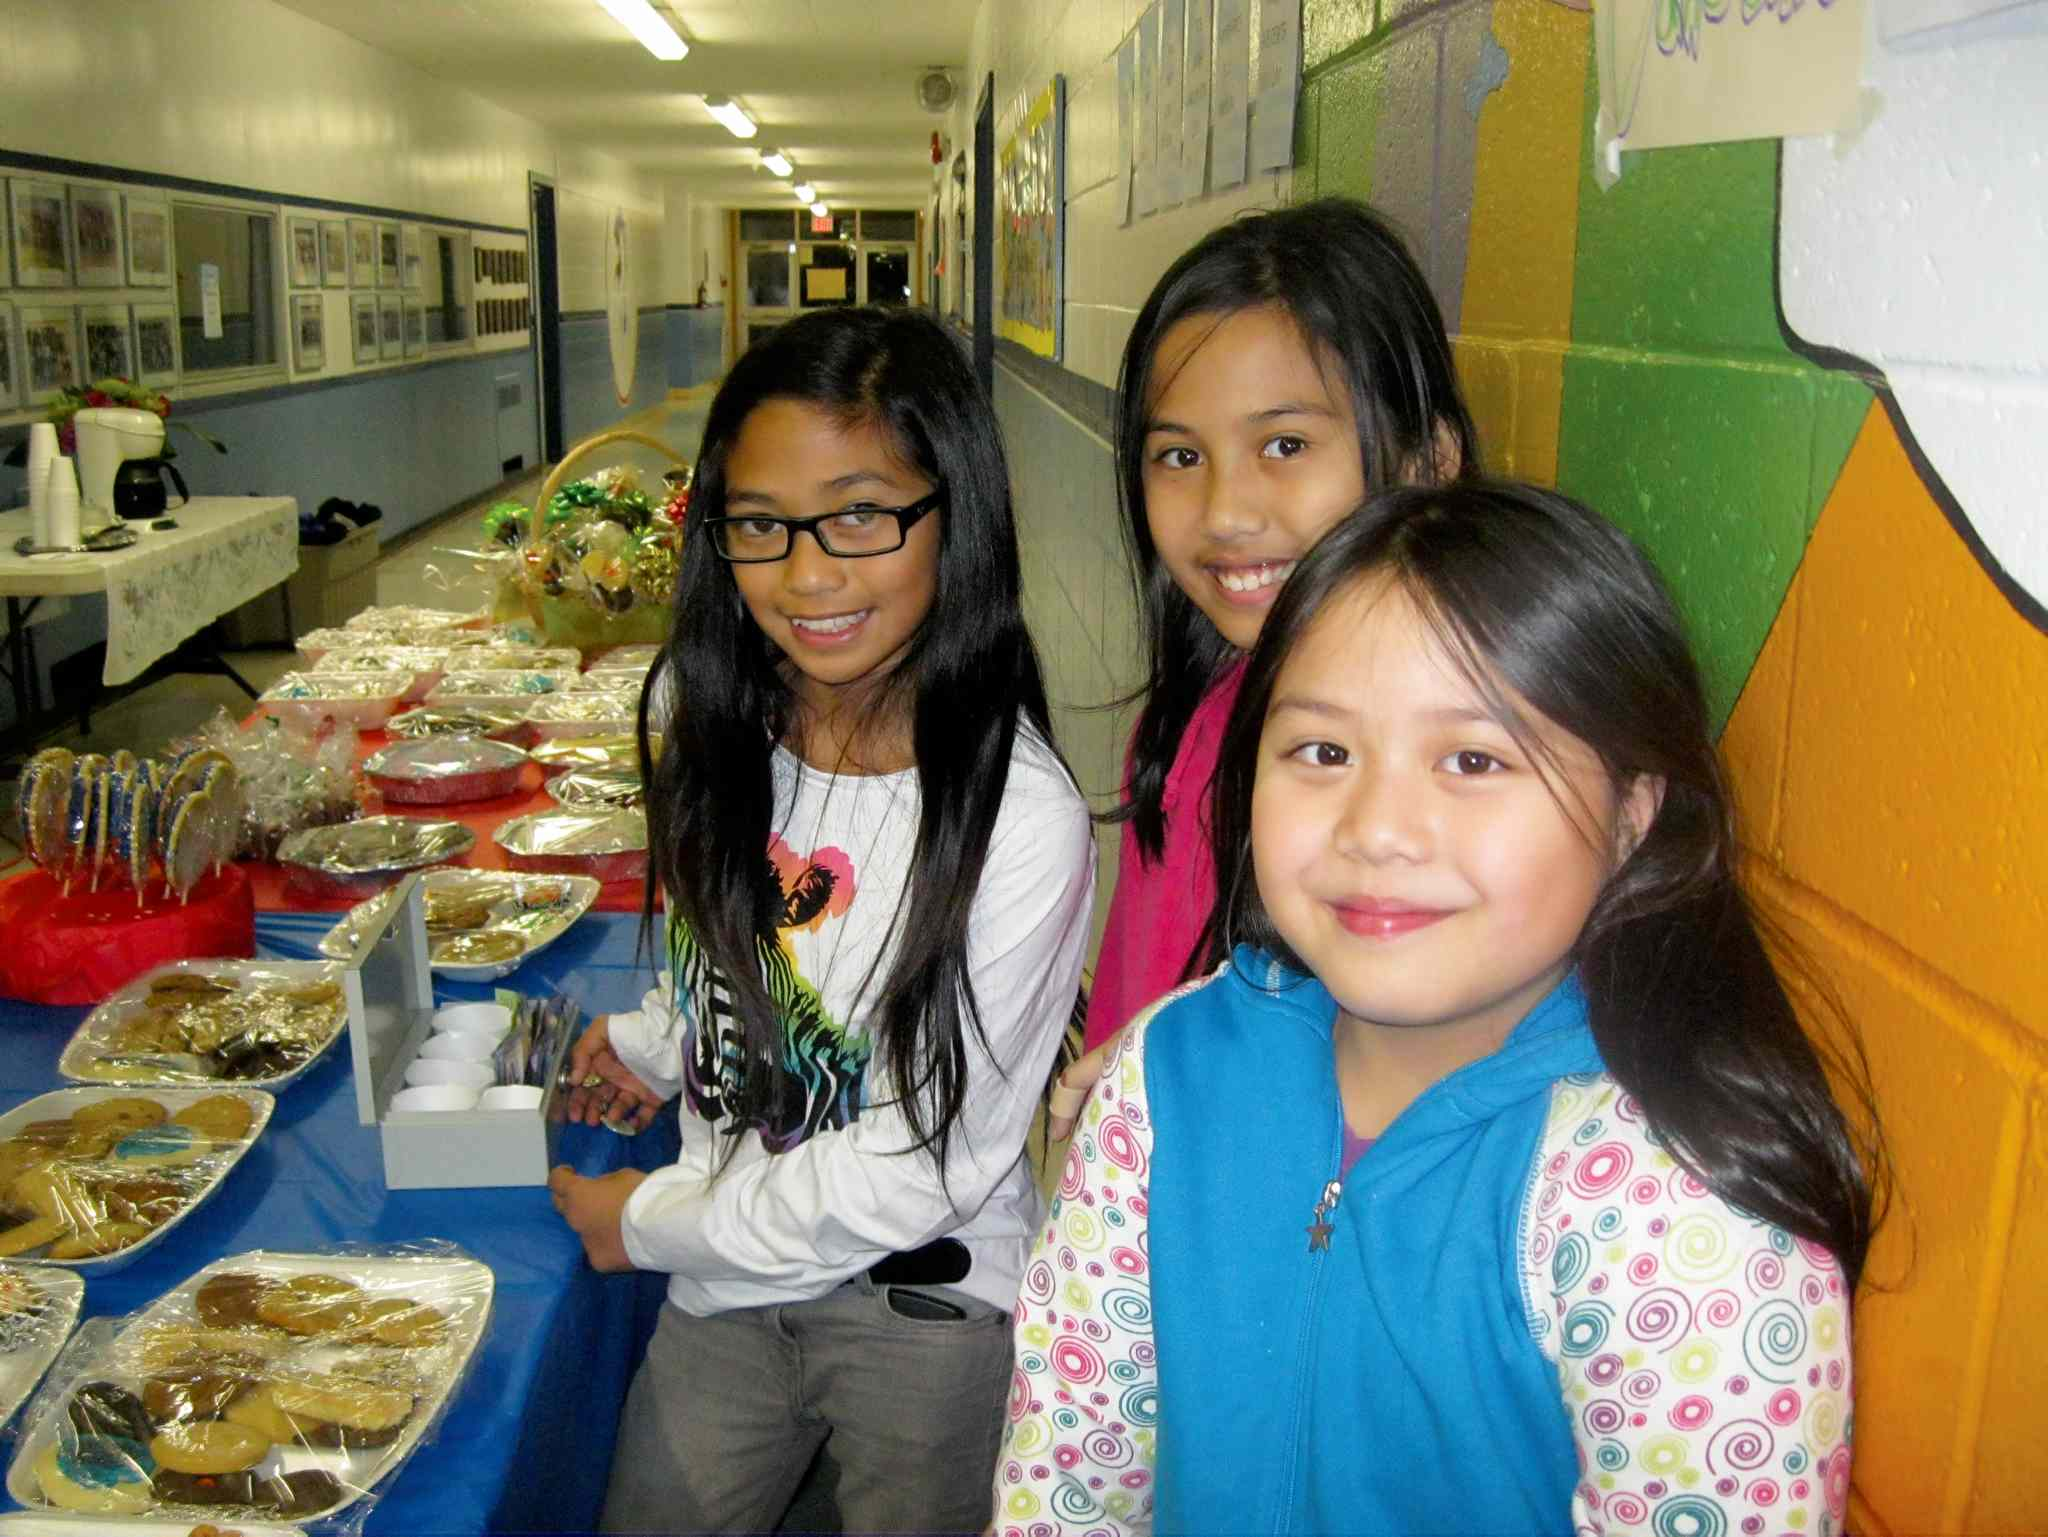 Kent Road School students Sydney Decanay, Samantha Aguila and Hannah Ang are shown creating posters for the school's bake sale in support of Filipino relief.